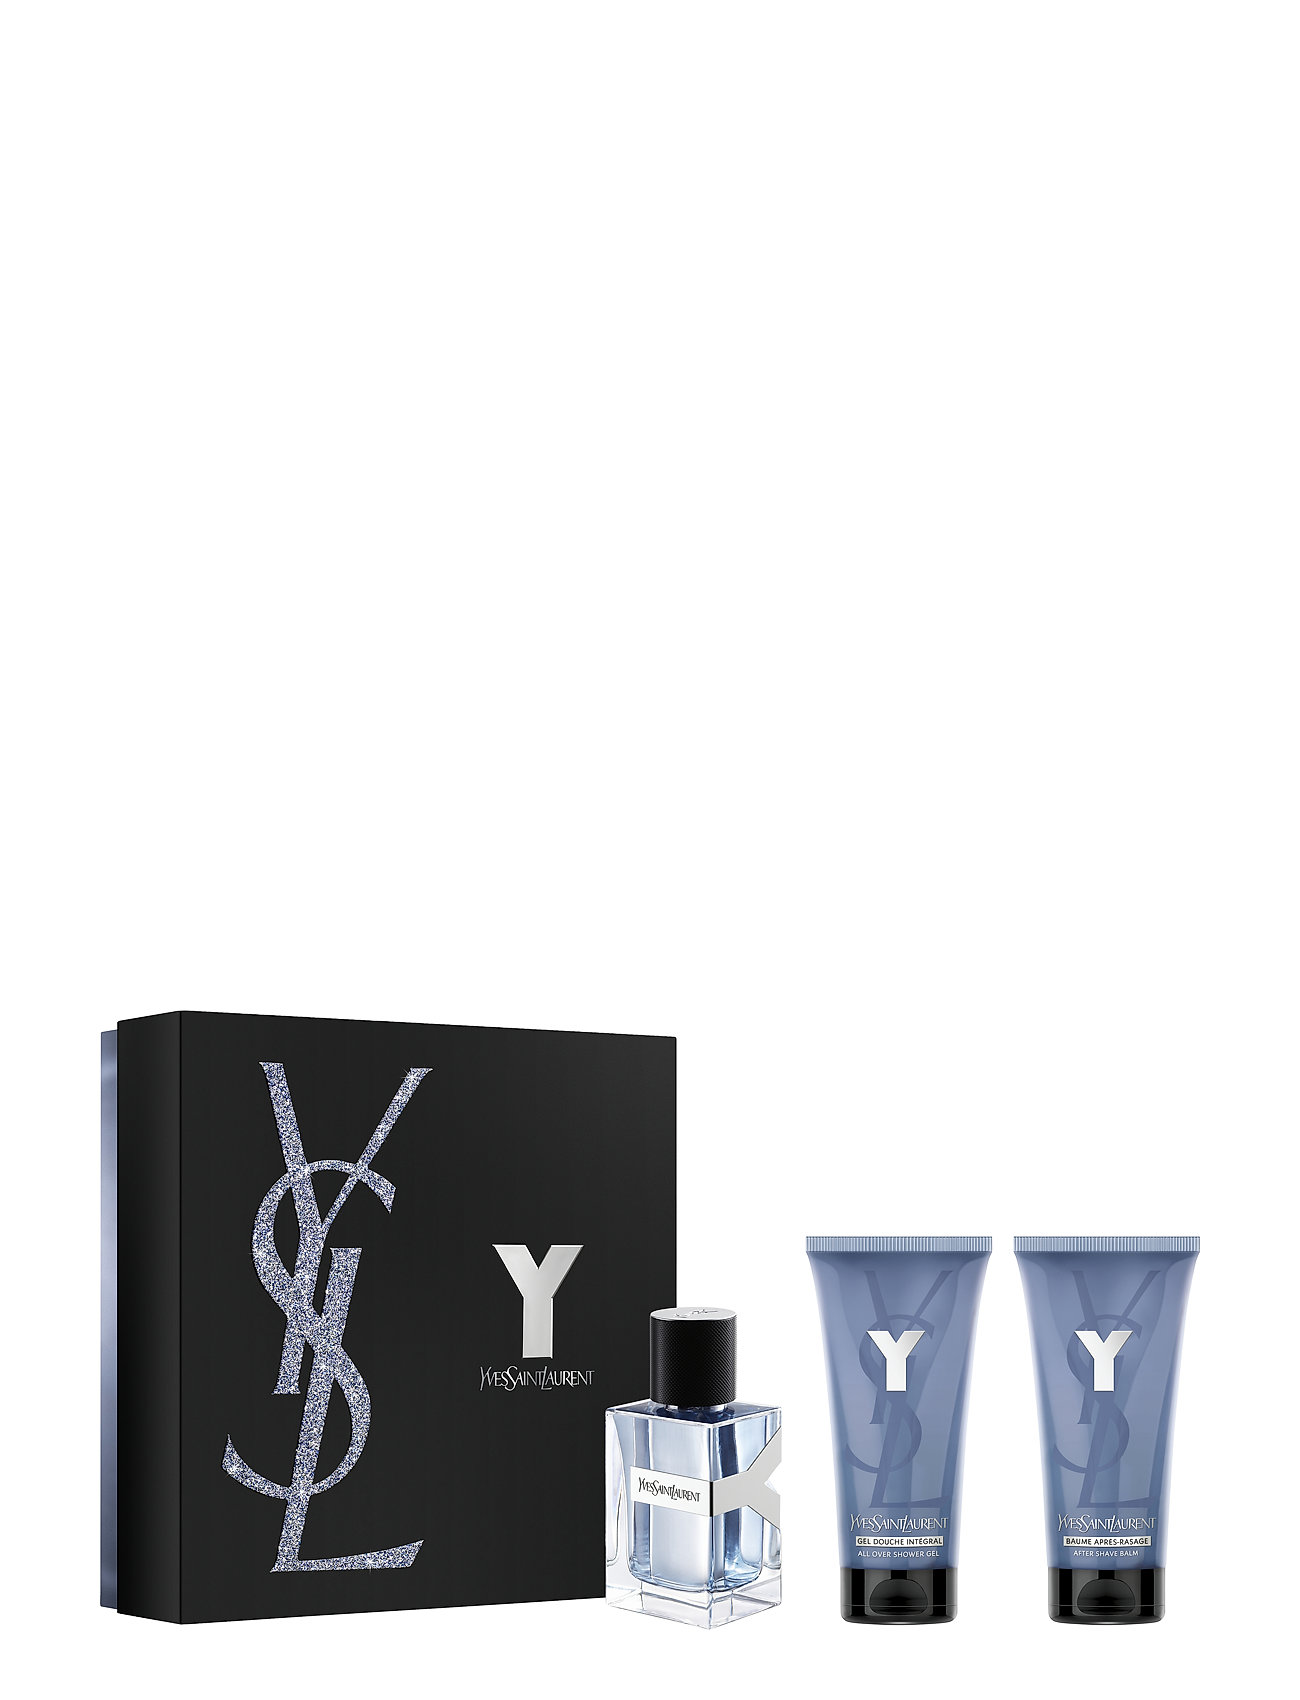 Yves Saint Laurent Y Eau de Toilette Box - NO COLOR